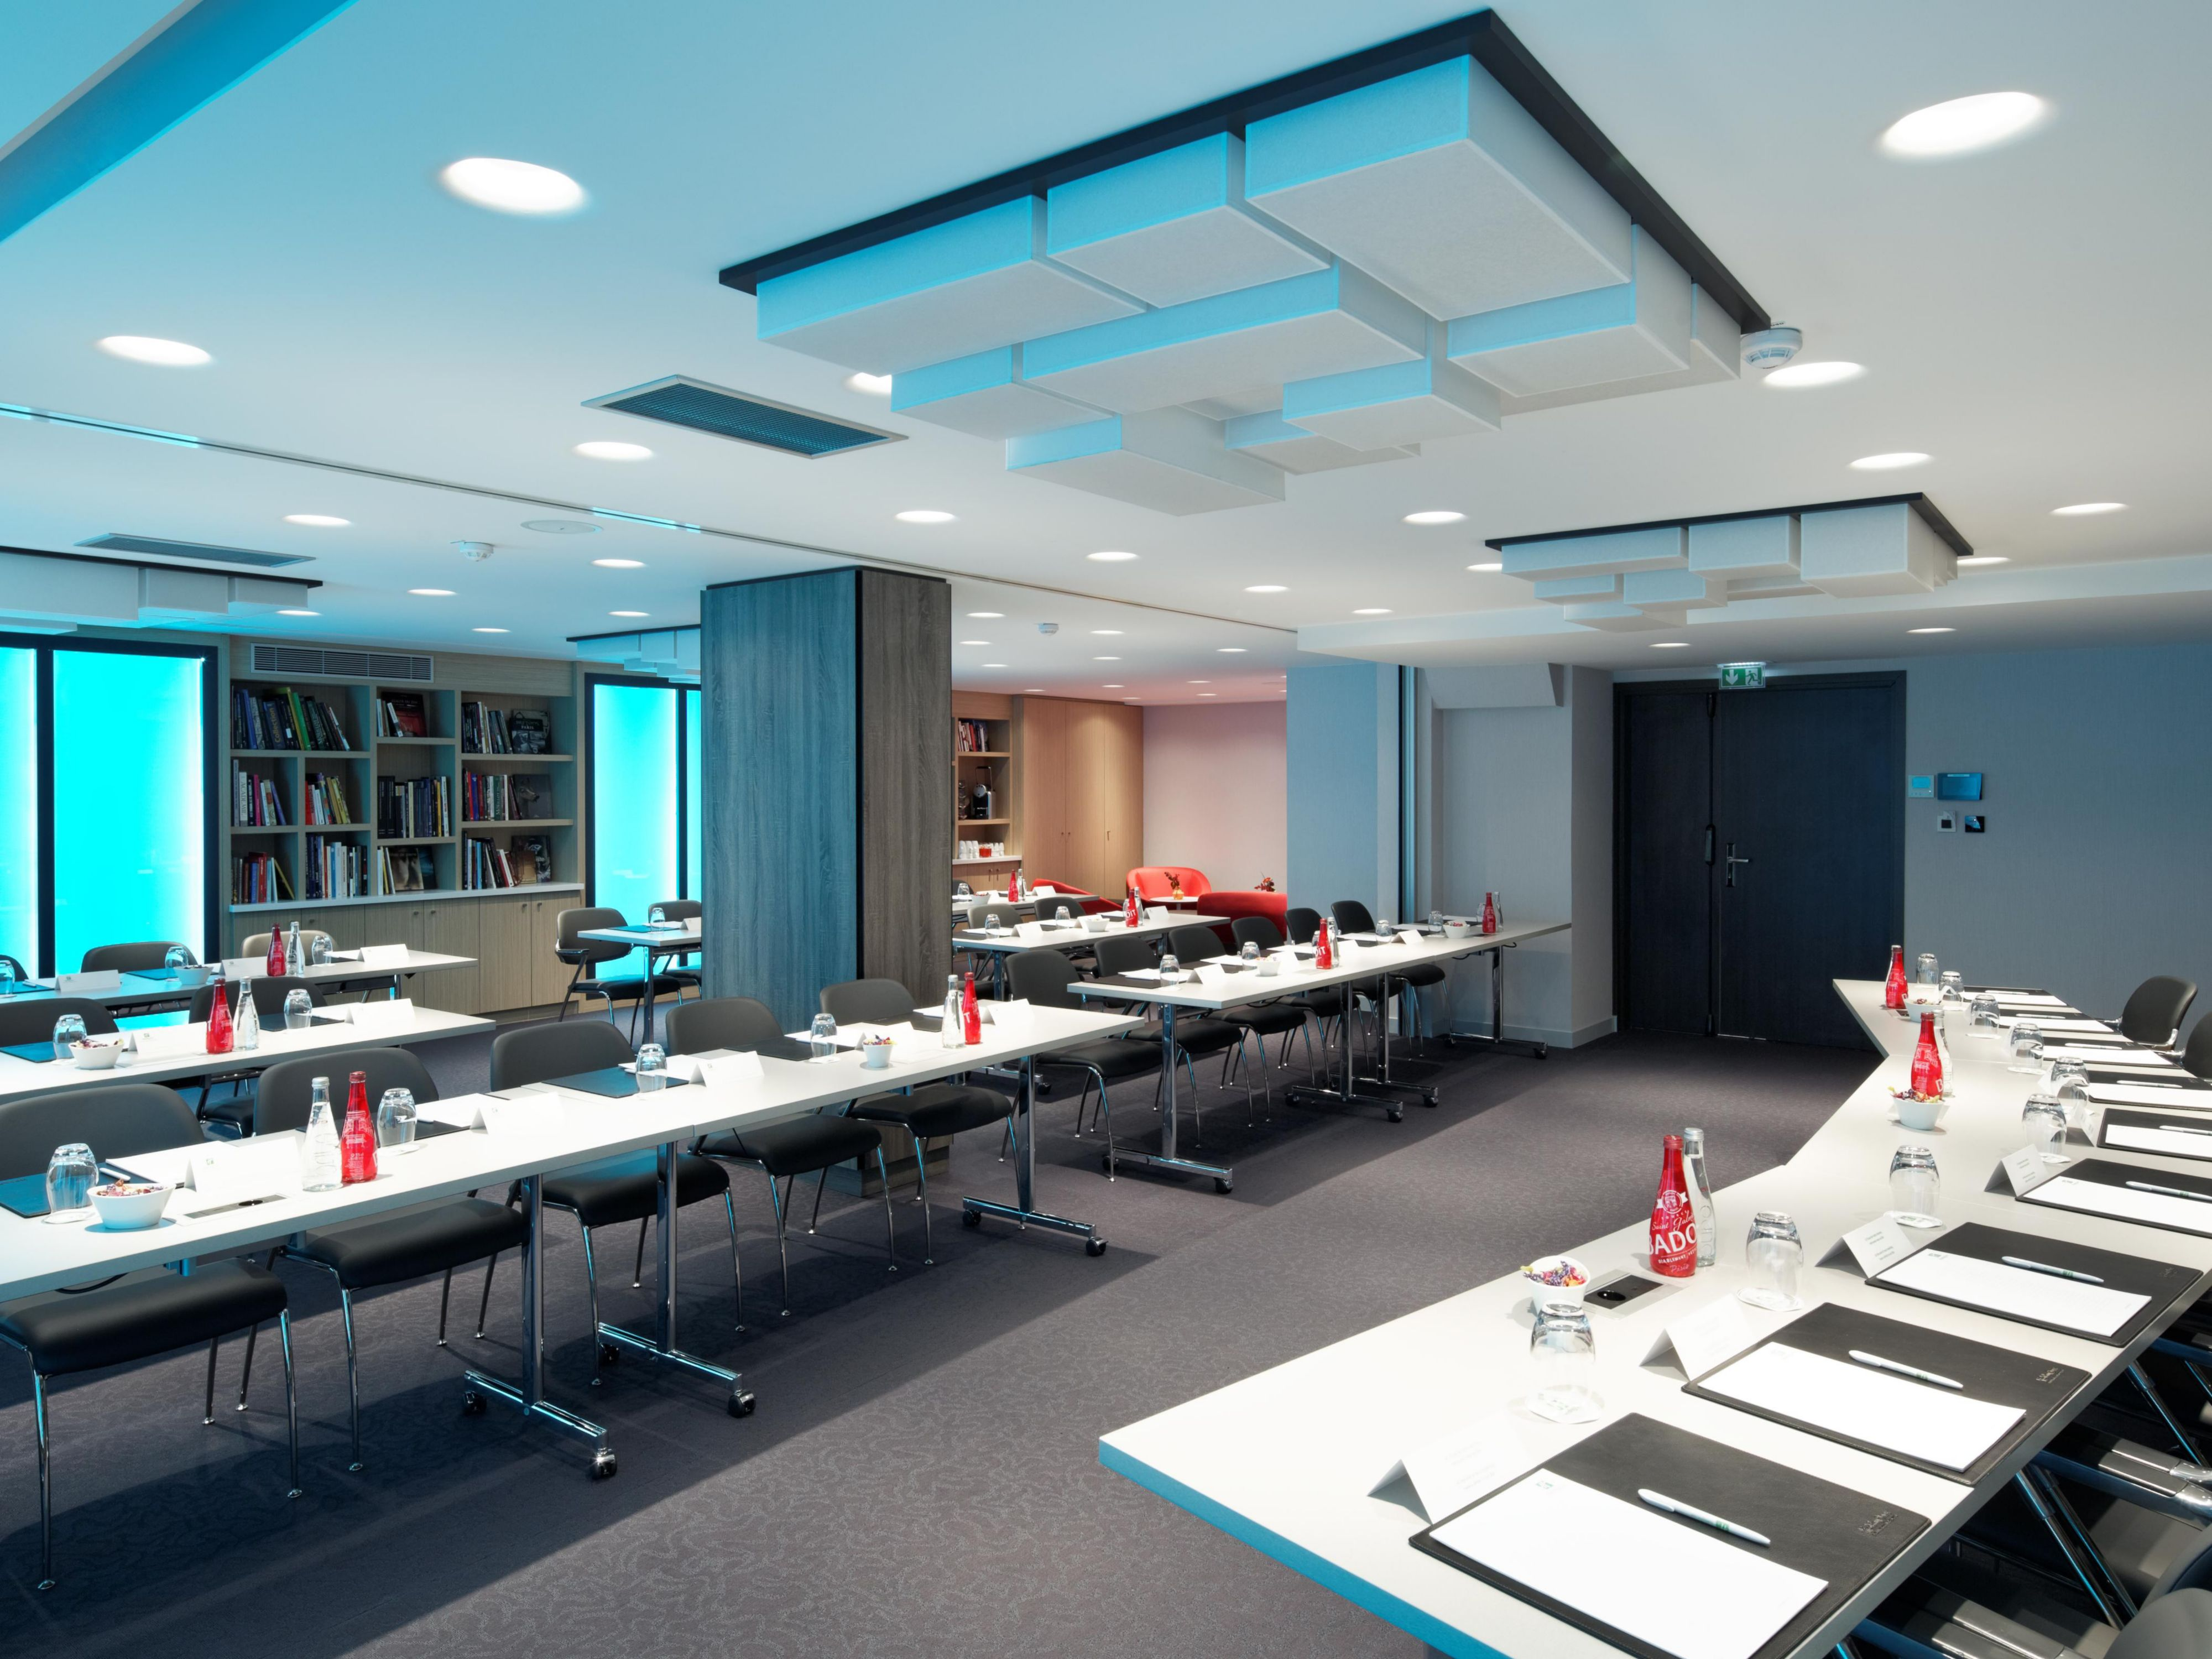 Conference room with Living Colors Lighting System